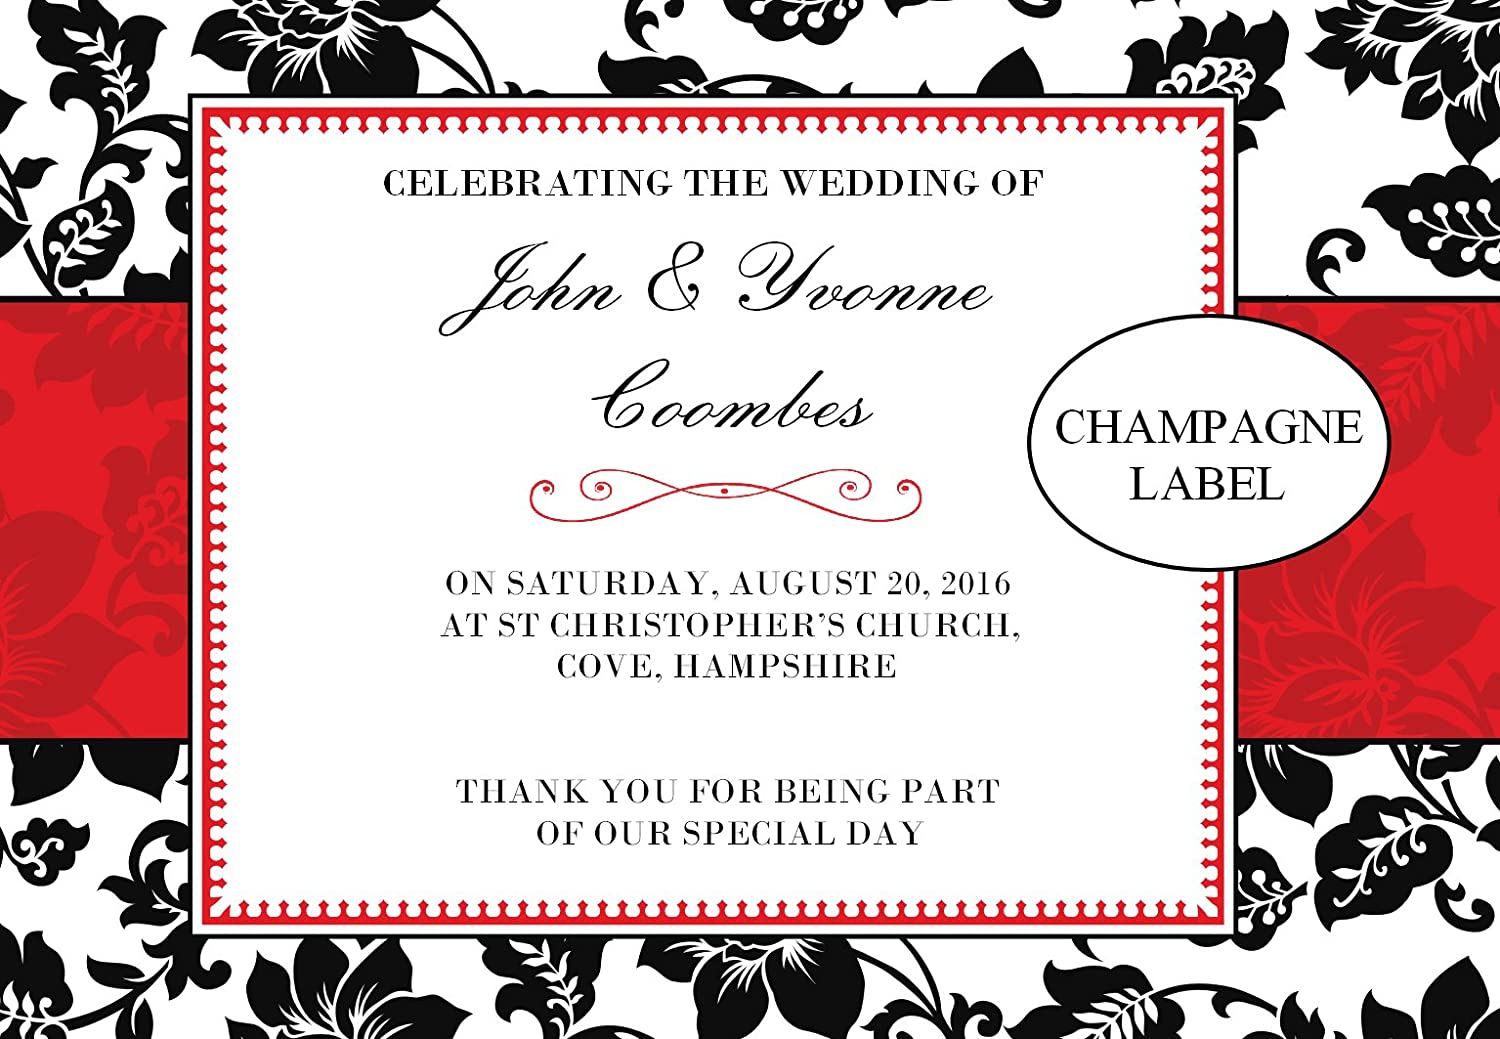 Personalised Wedding Wine or Champagne Bottle Label ~ Wedding Day Guest Table Favours Gift Idea N48